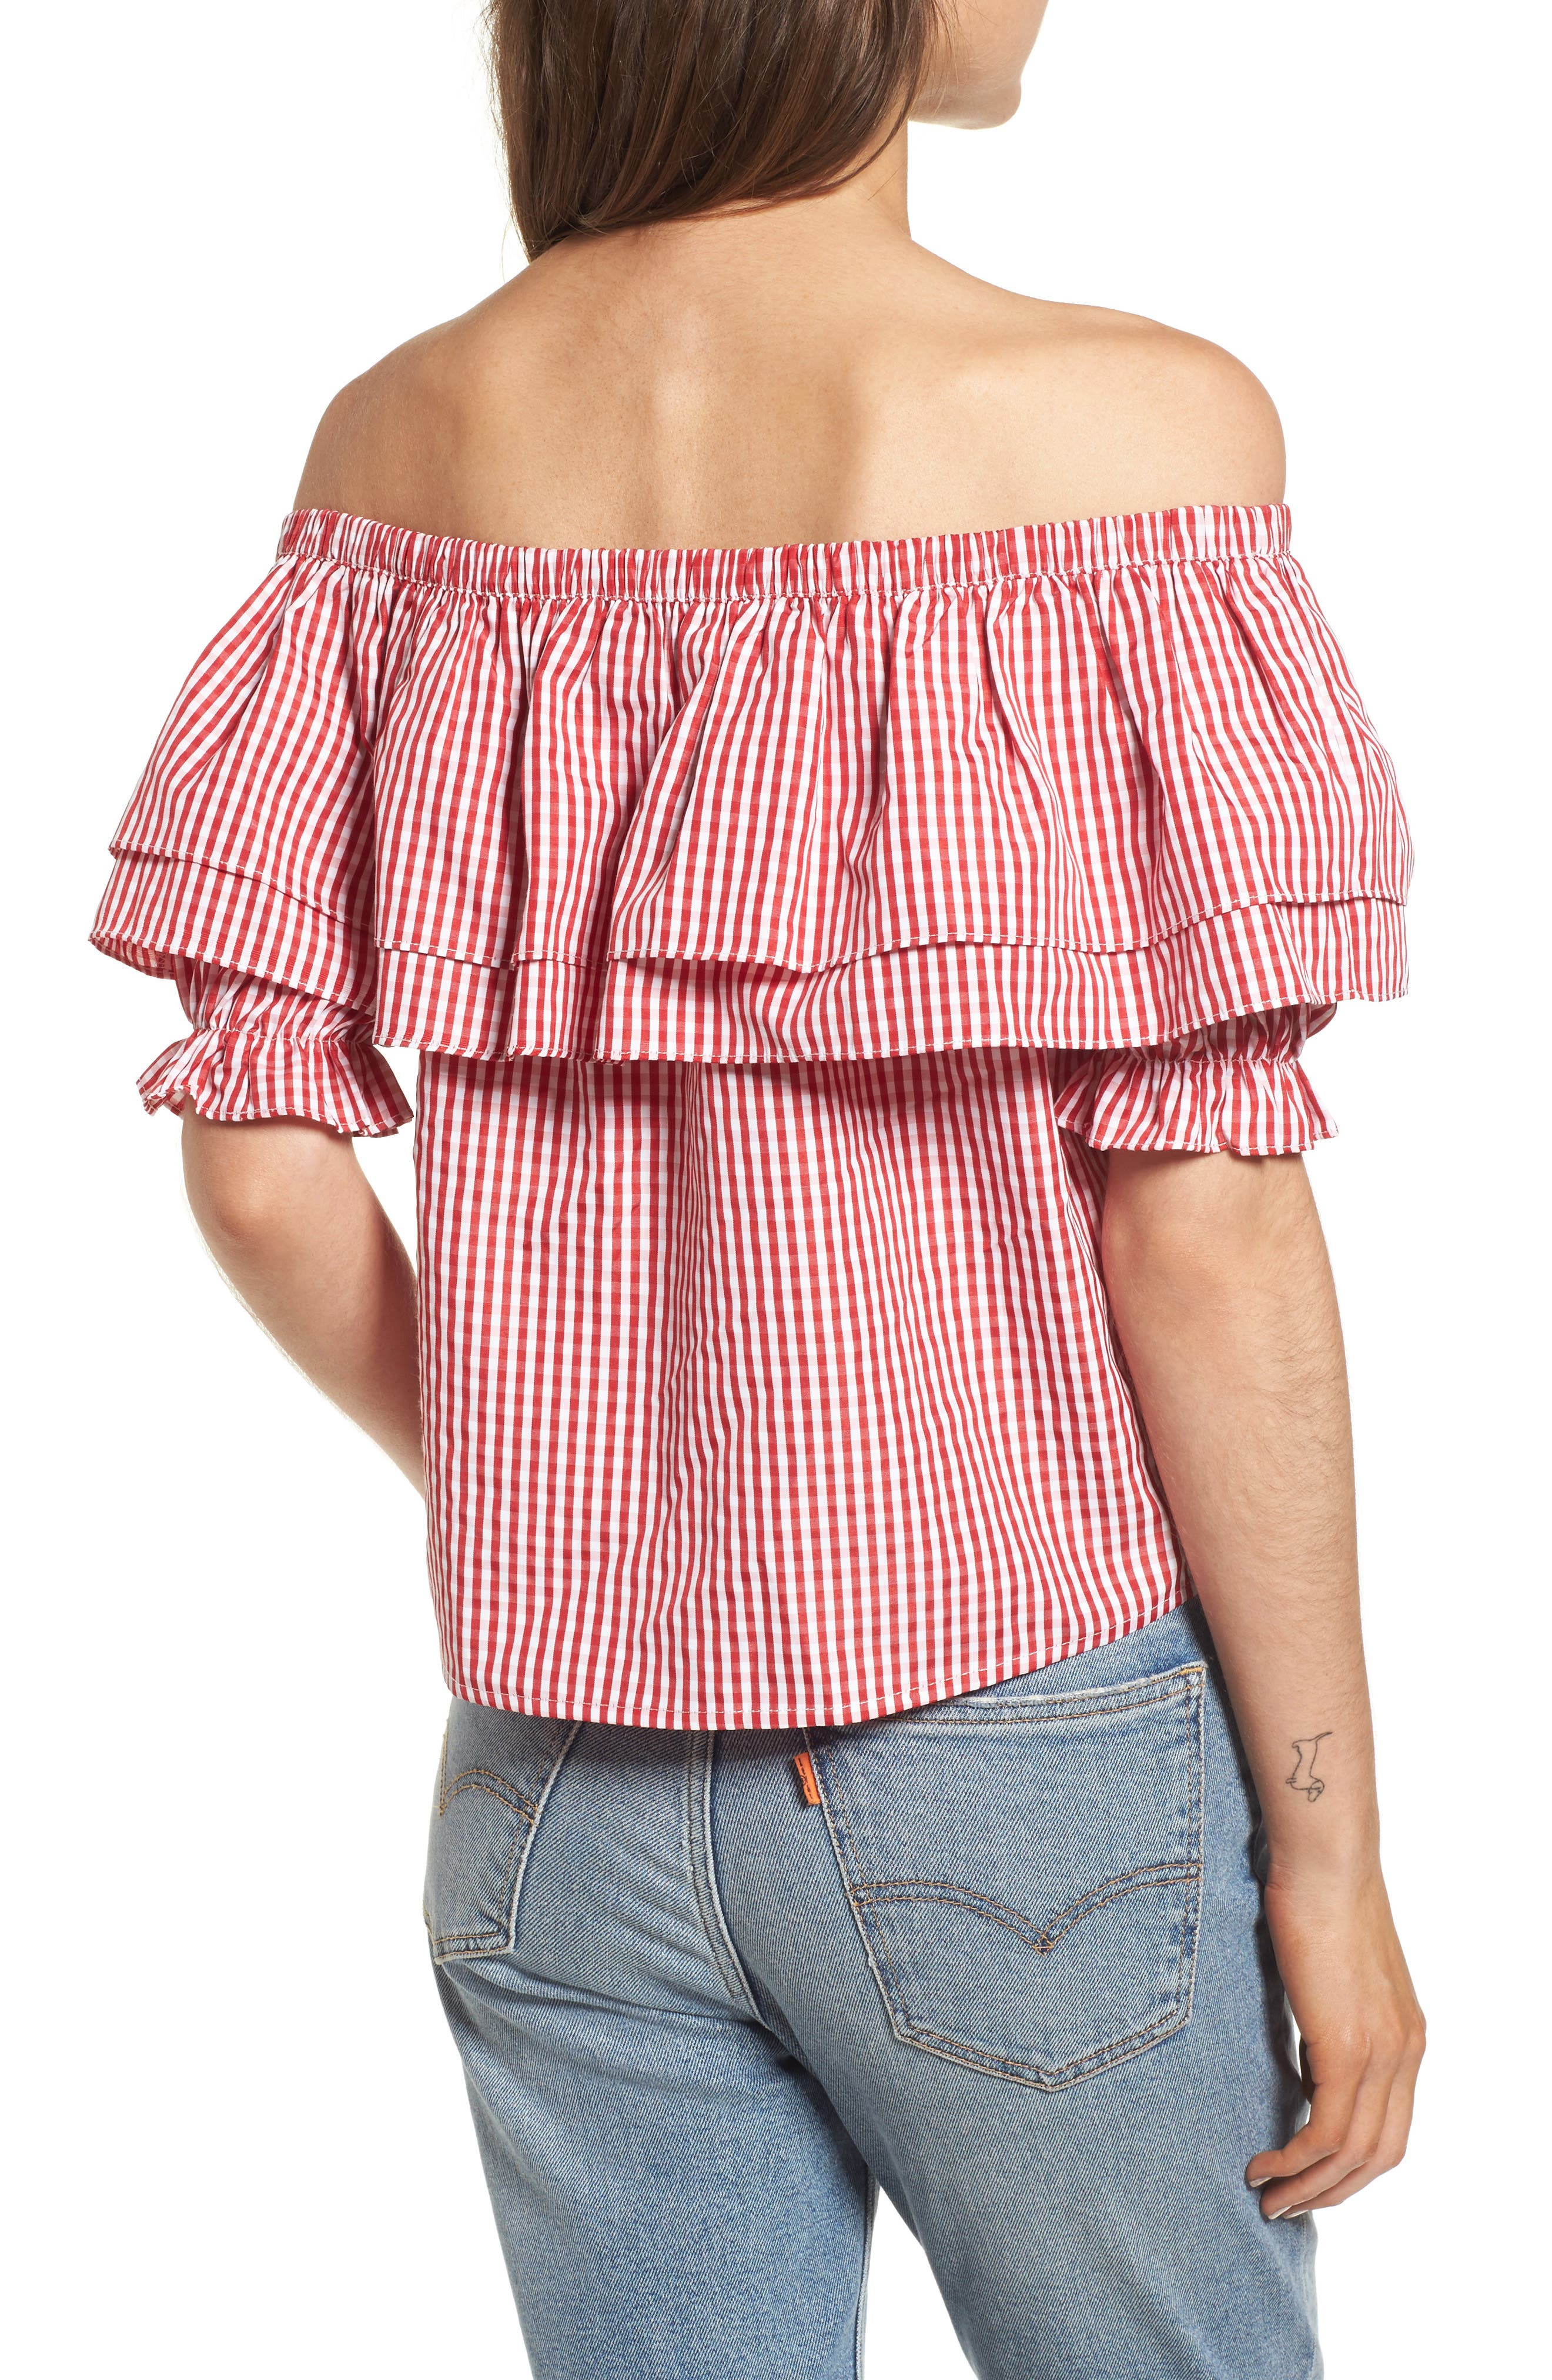 Embroidered Gingham Off the Shoulder Top,                             Alternate thumbnail 2, color,                             640